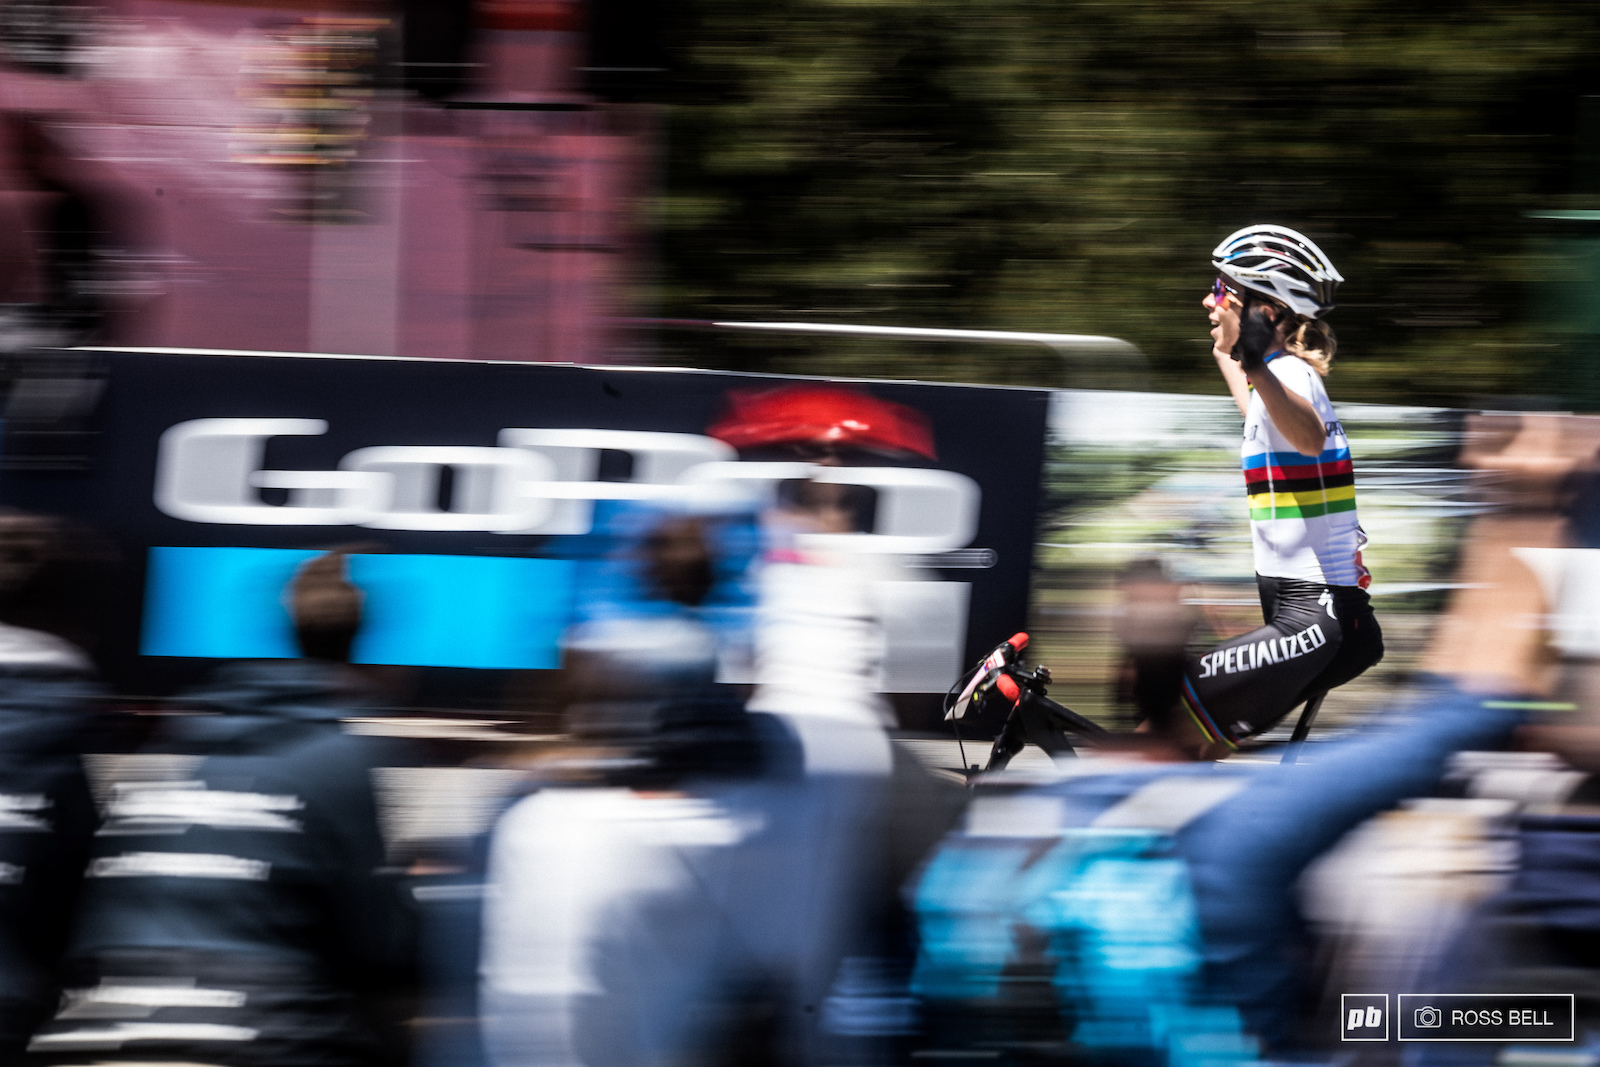 Annika Langvad was more than happy with her ride today.